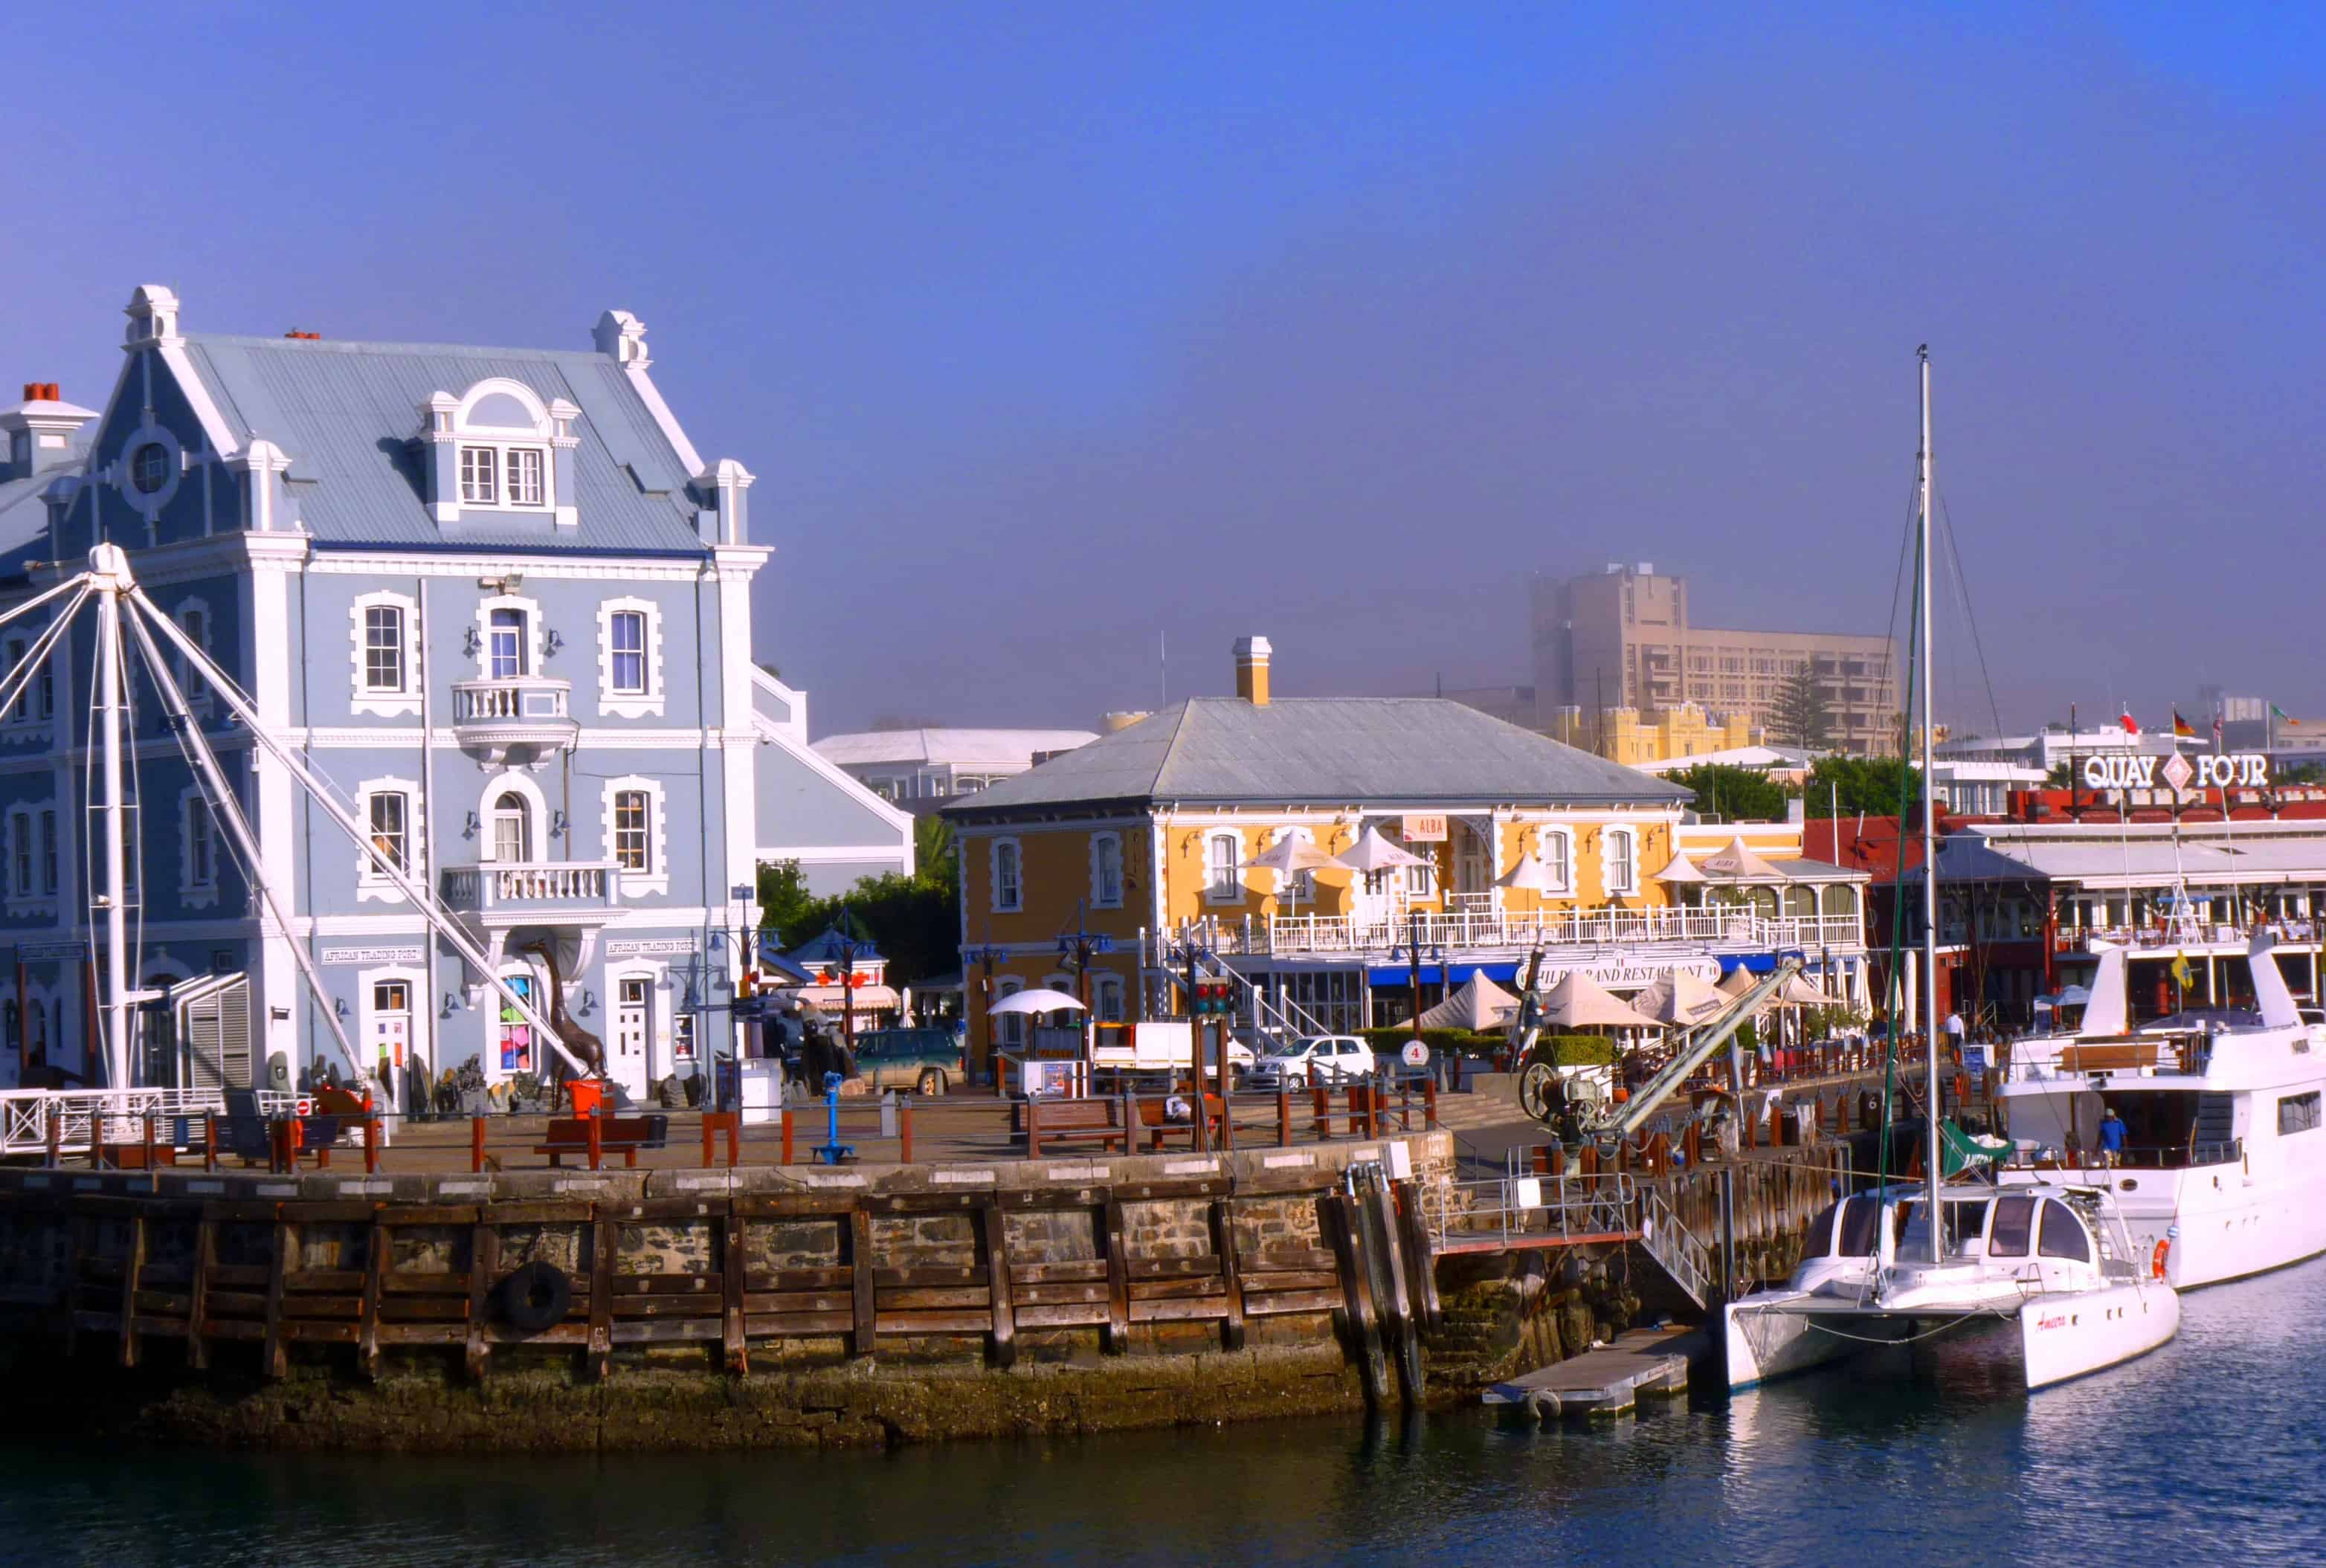 Capetown V & A Waterfront